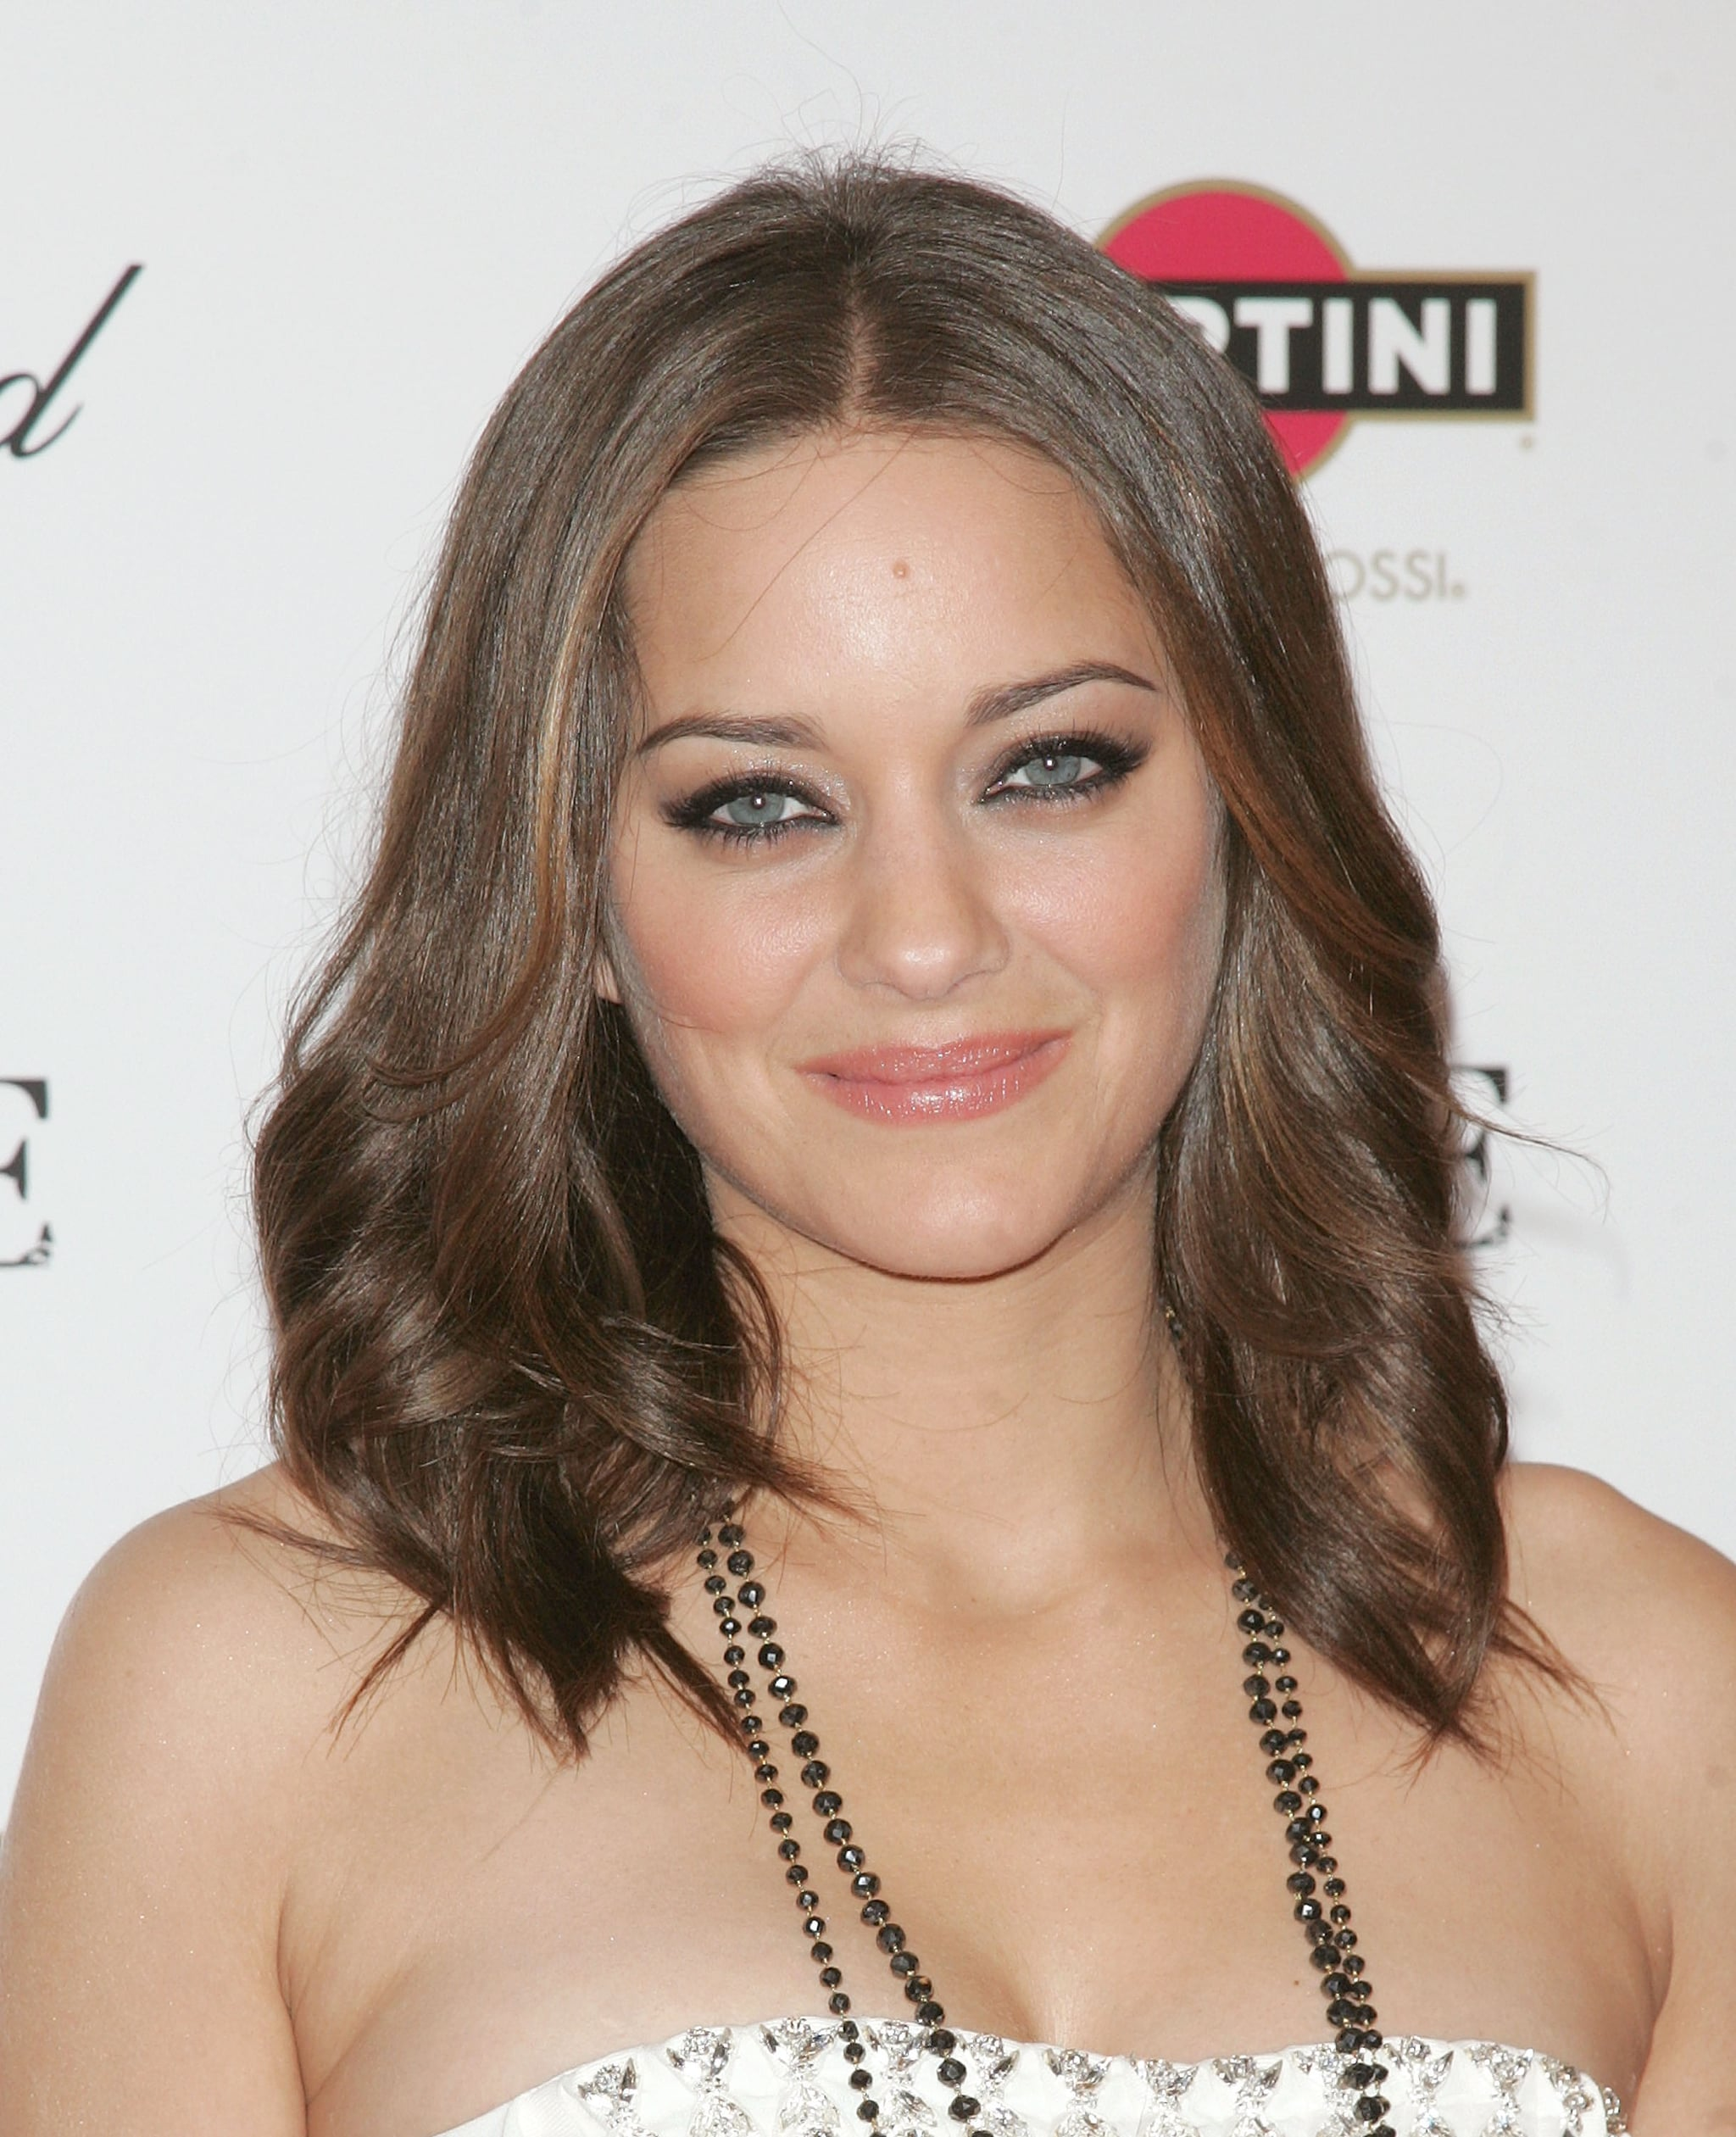 Marion Cotillard Celebrities With The Clavicut Hairstyle